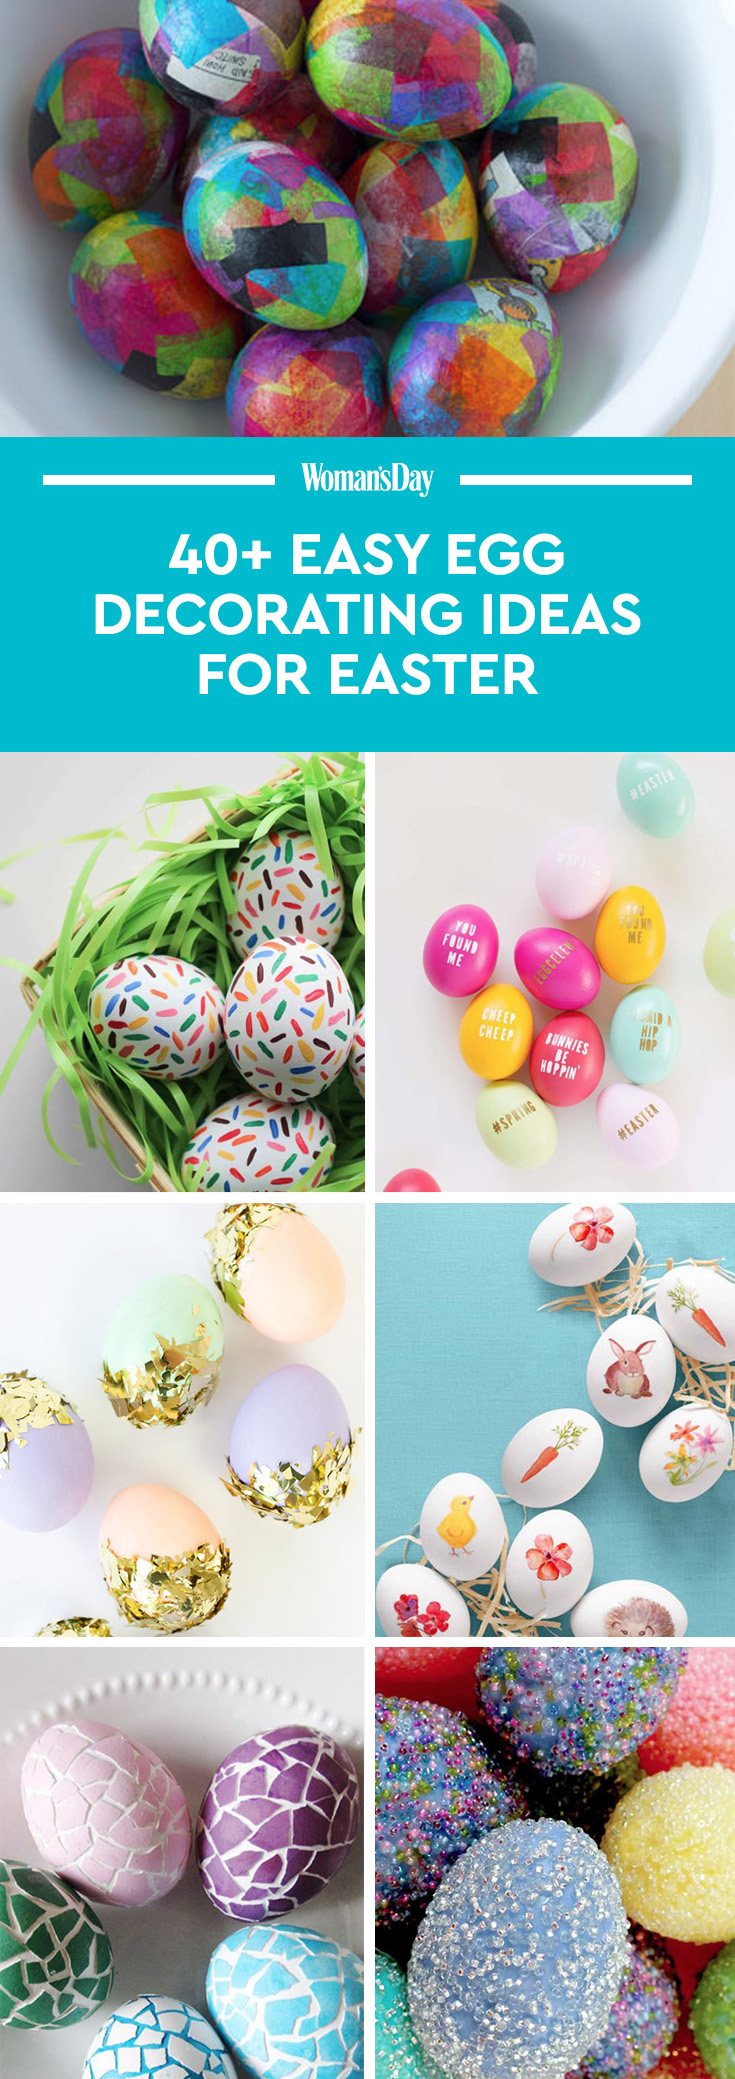 42 cool easter egg decorating ideas creative designs for for Easter egg ideas